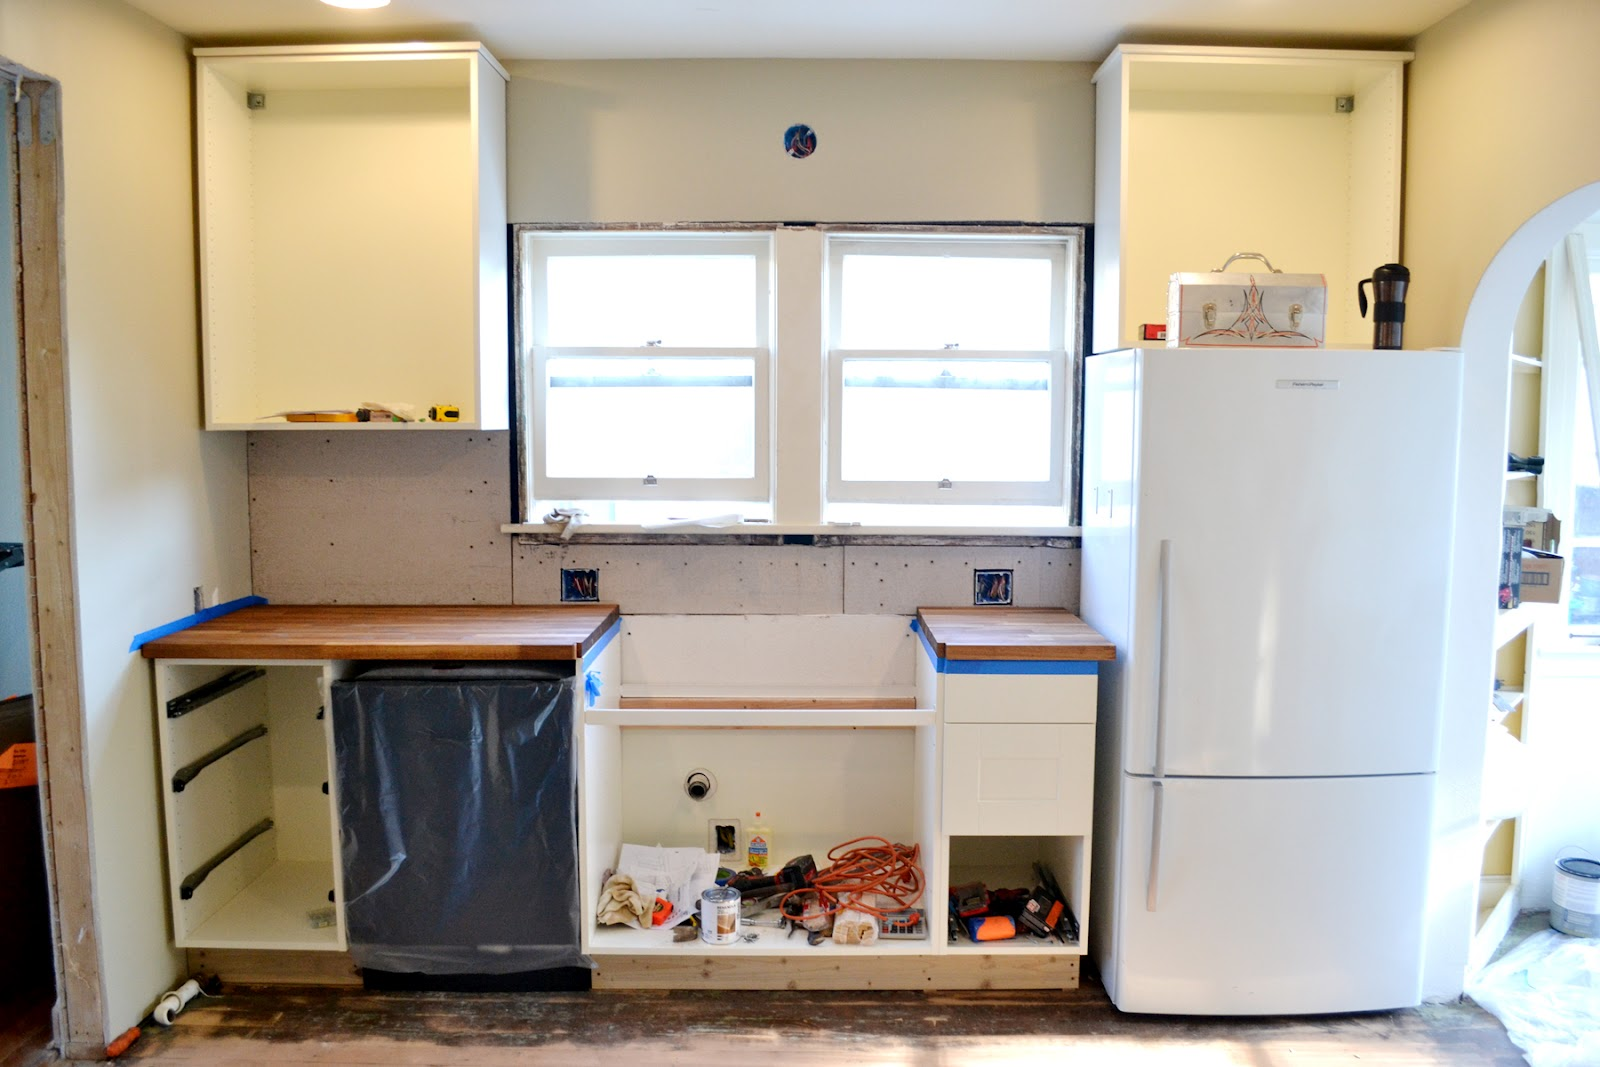 How Much To Replace Kitchen Cabinets Sears Sinks Install